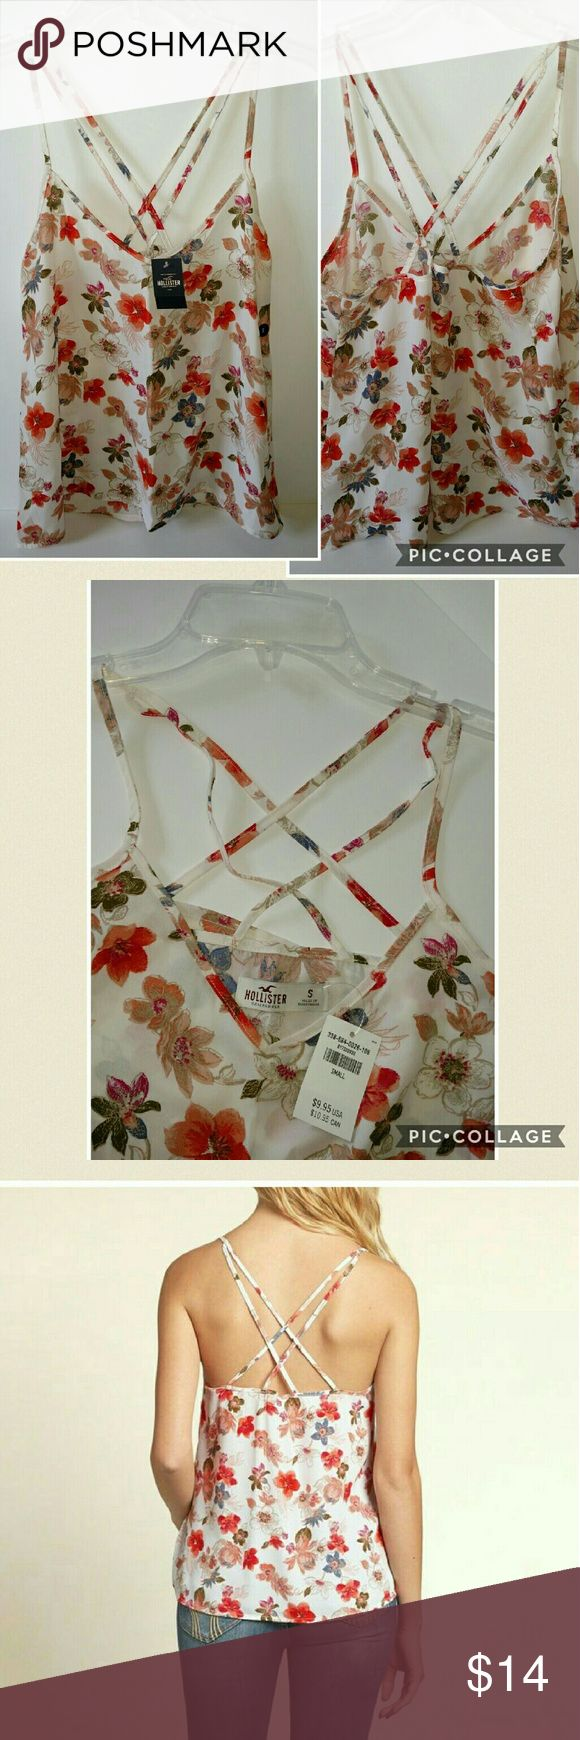 Nwt! Hollister floral must have strappy tank small Cute Hollister must have tank! Strappy in back. Size small runs tts for a cute flowy look. May fit a med but less flowy, also material does not stretch.   ?? ships in 1 day Reasonable offers &?welcome Clean smoke free home  No trades Hollister Tops Tank Tops